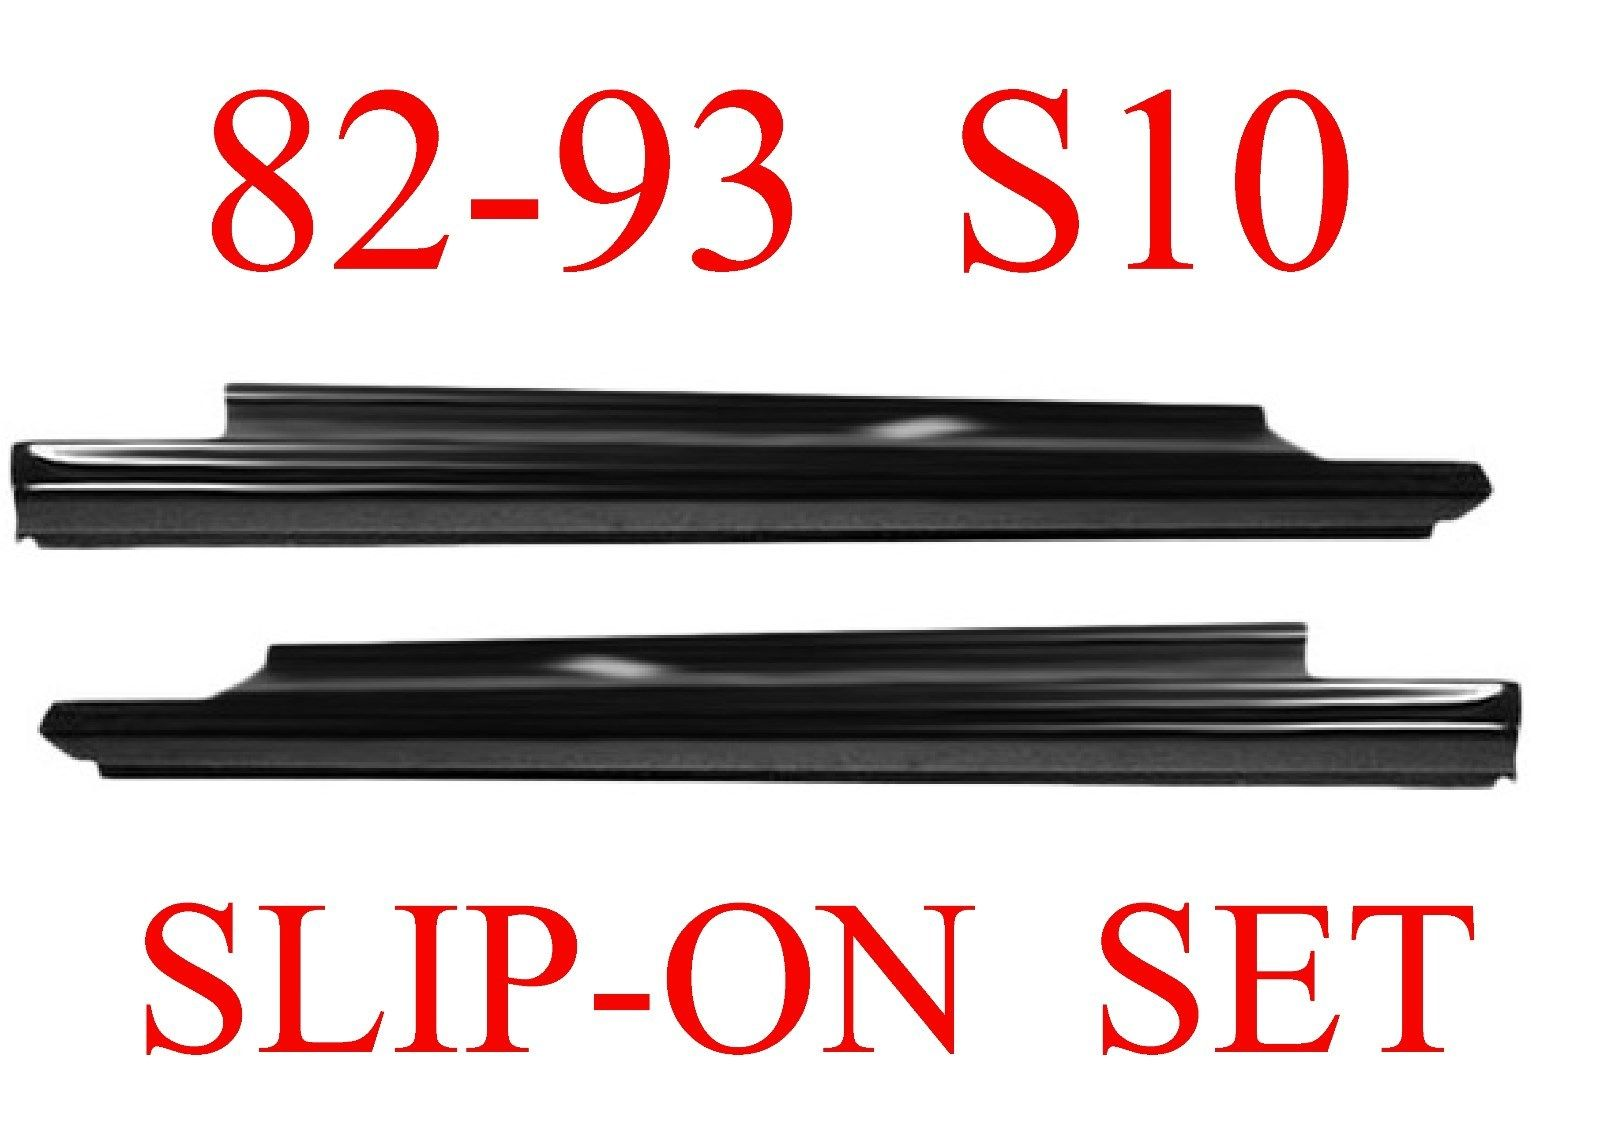 82 93 S10 Slip-On Rocker Panel Set